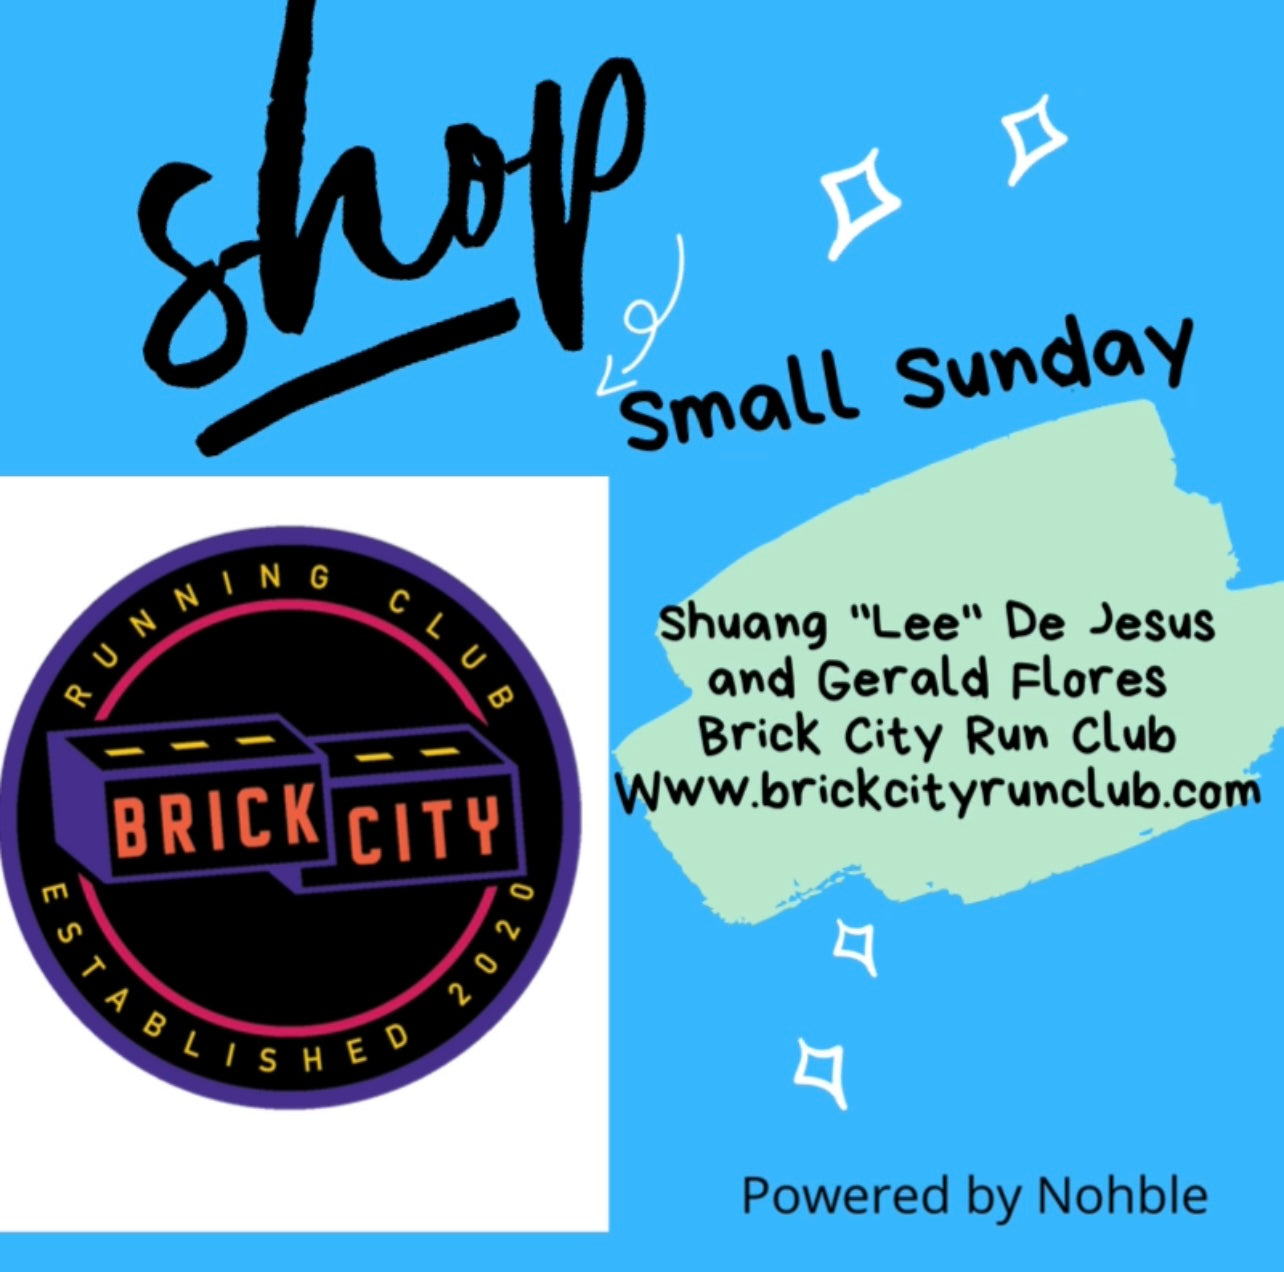 Shop Small Sunday - Brick City Run Club